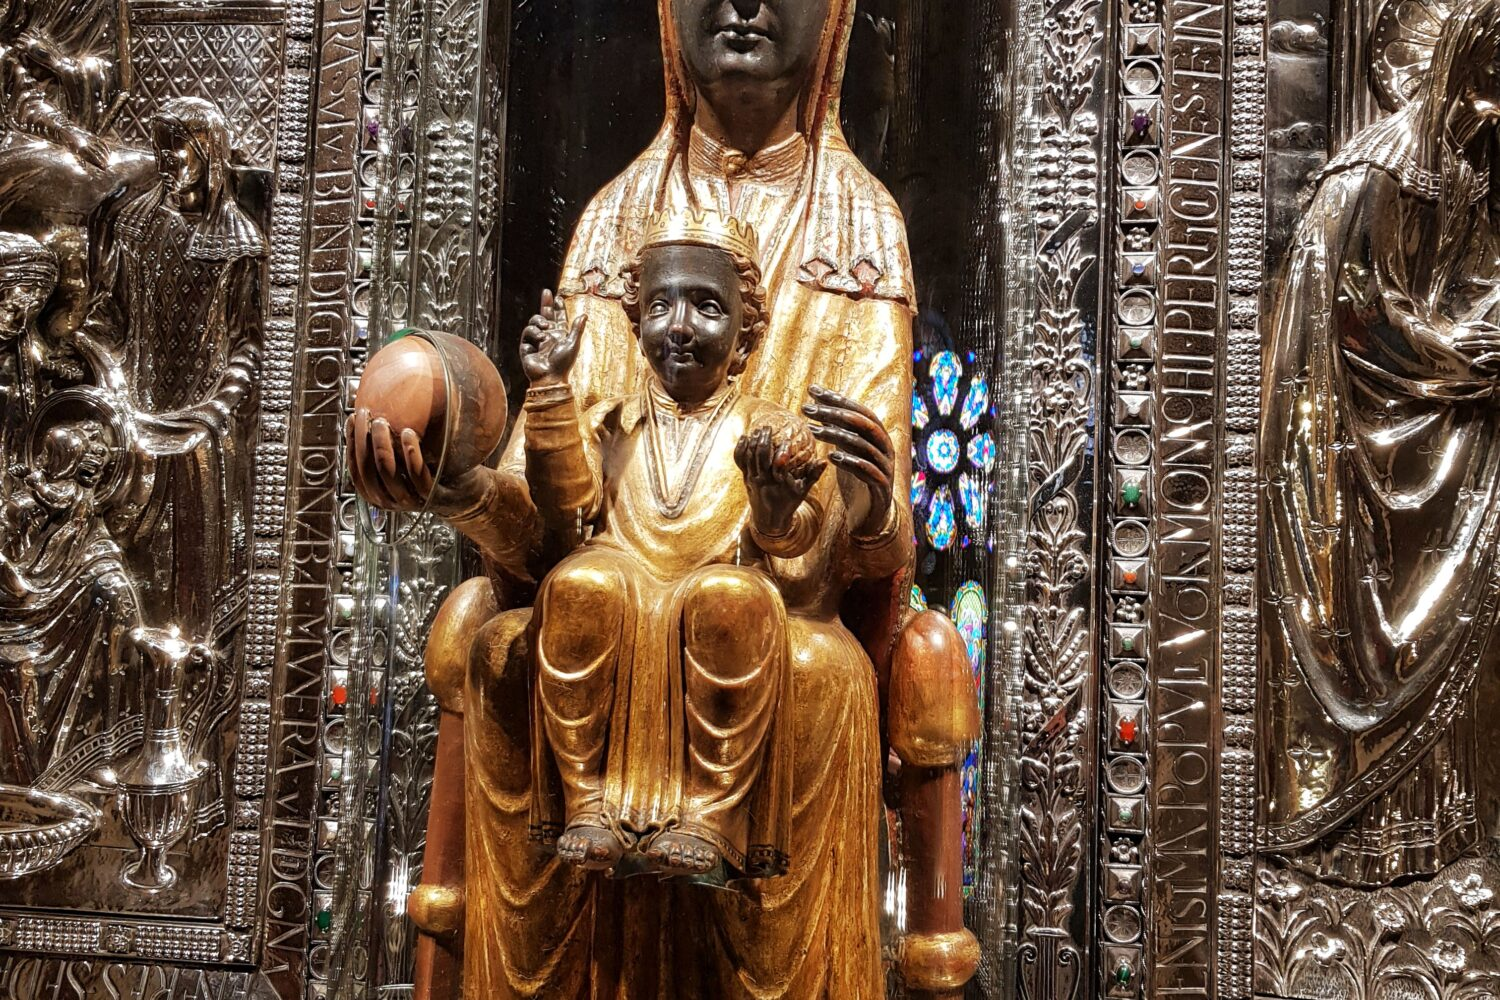 The Black Madonna of Montserrat